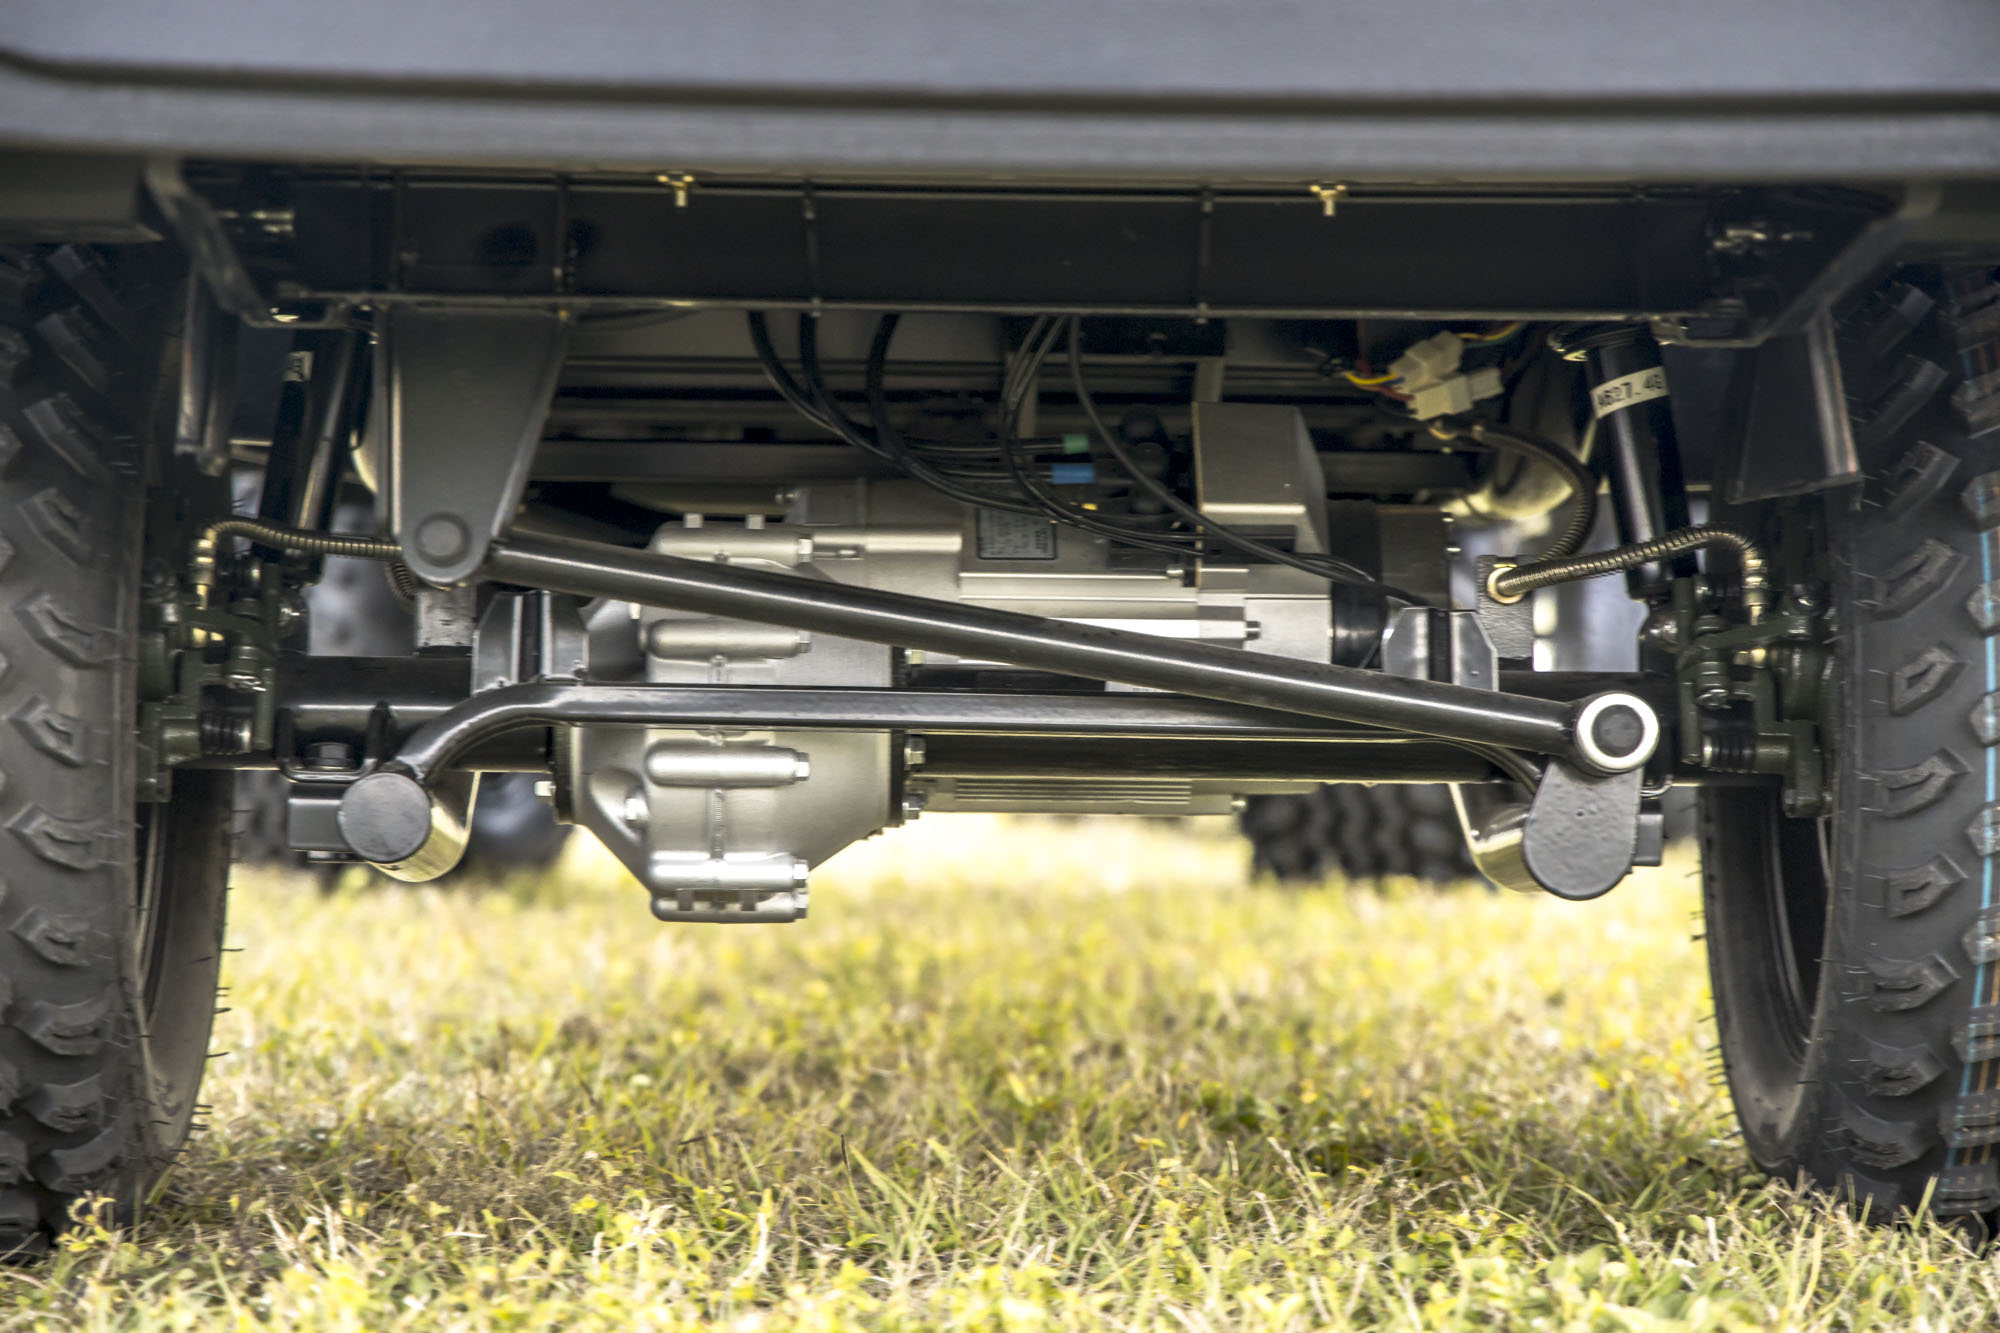 Undercarriage of ICON Golf Cart